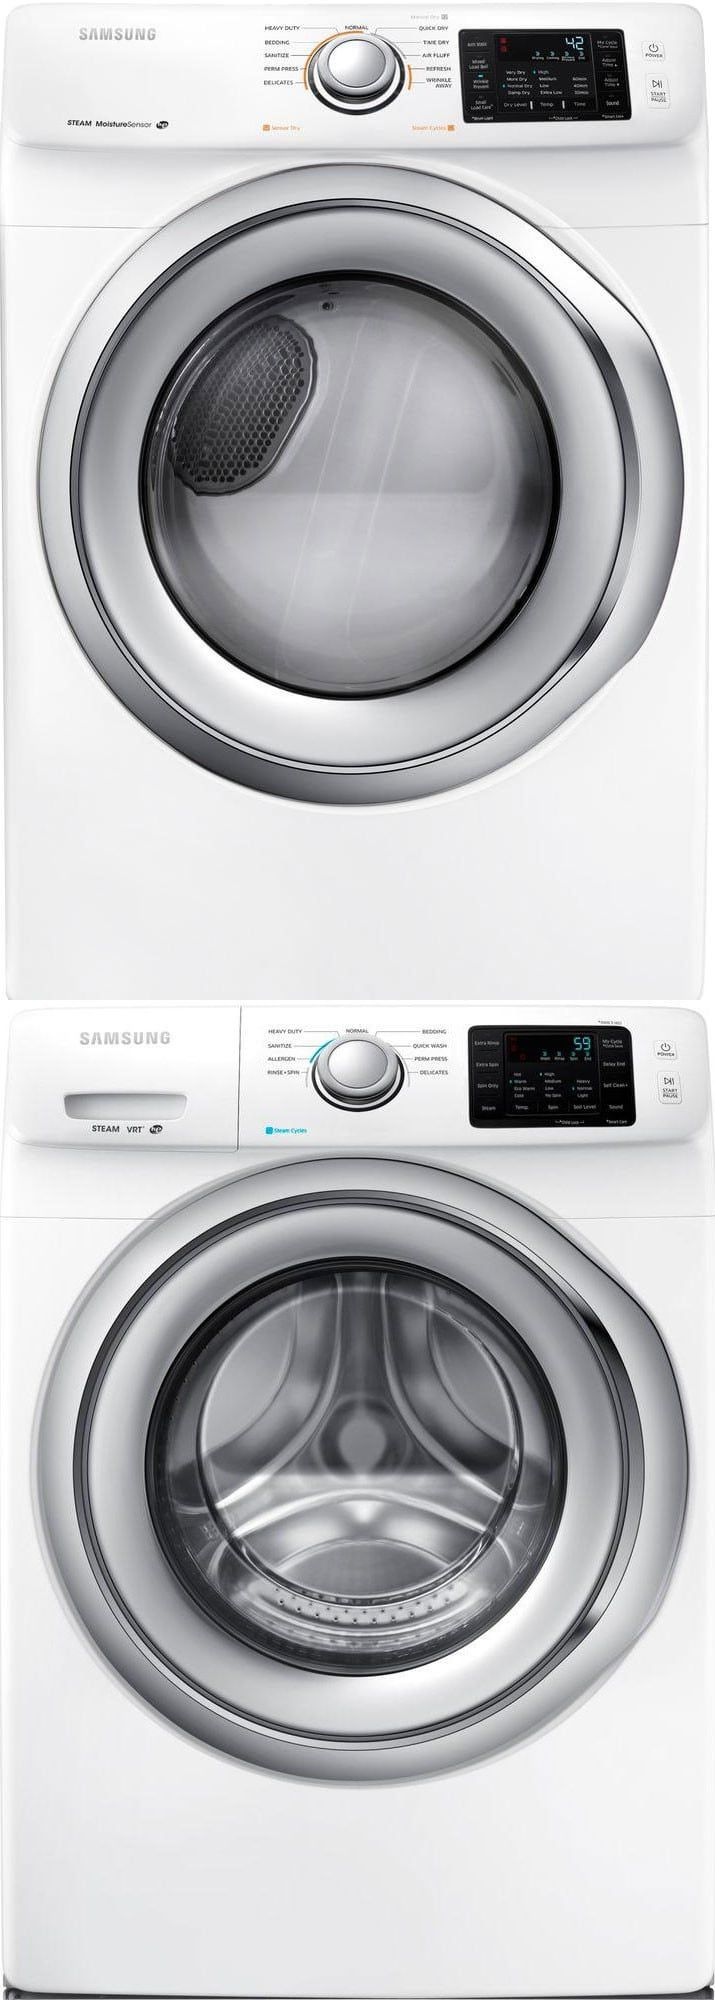 Samsung SAWADREW32 Stacked Washer & Dryer Set with Front Load Washer and Electric Dryer in White